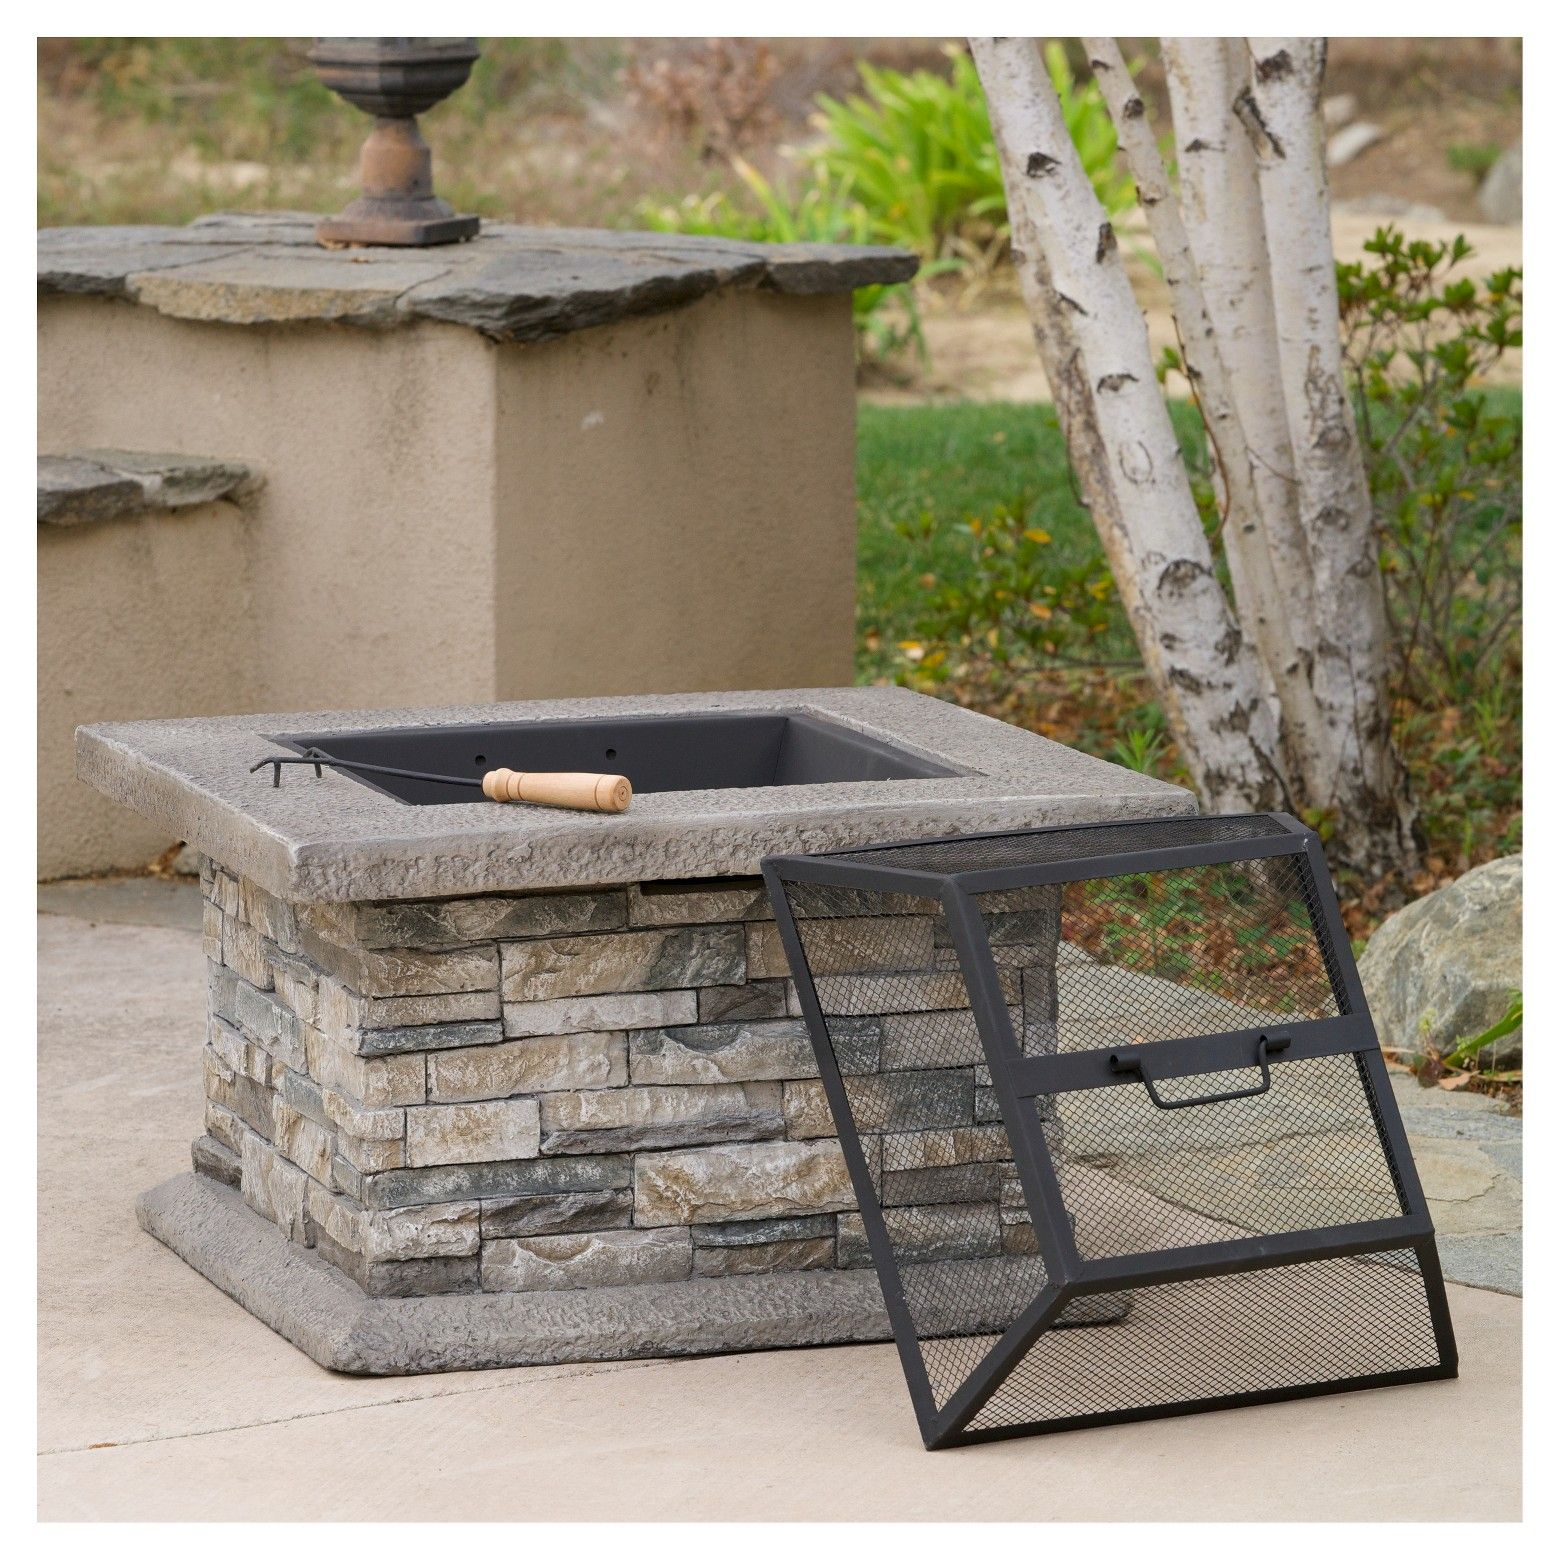 Crestline 29 Concrete Wood Burning Fire Pit Square Natural Stone Christopher Knight Home Wood Burning Fire Pit Outdoor Fire Pit Outdoor Fire Pit Designs